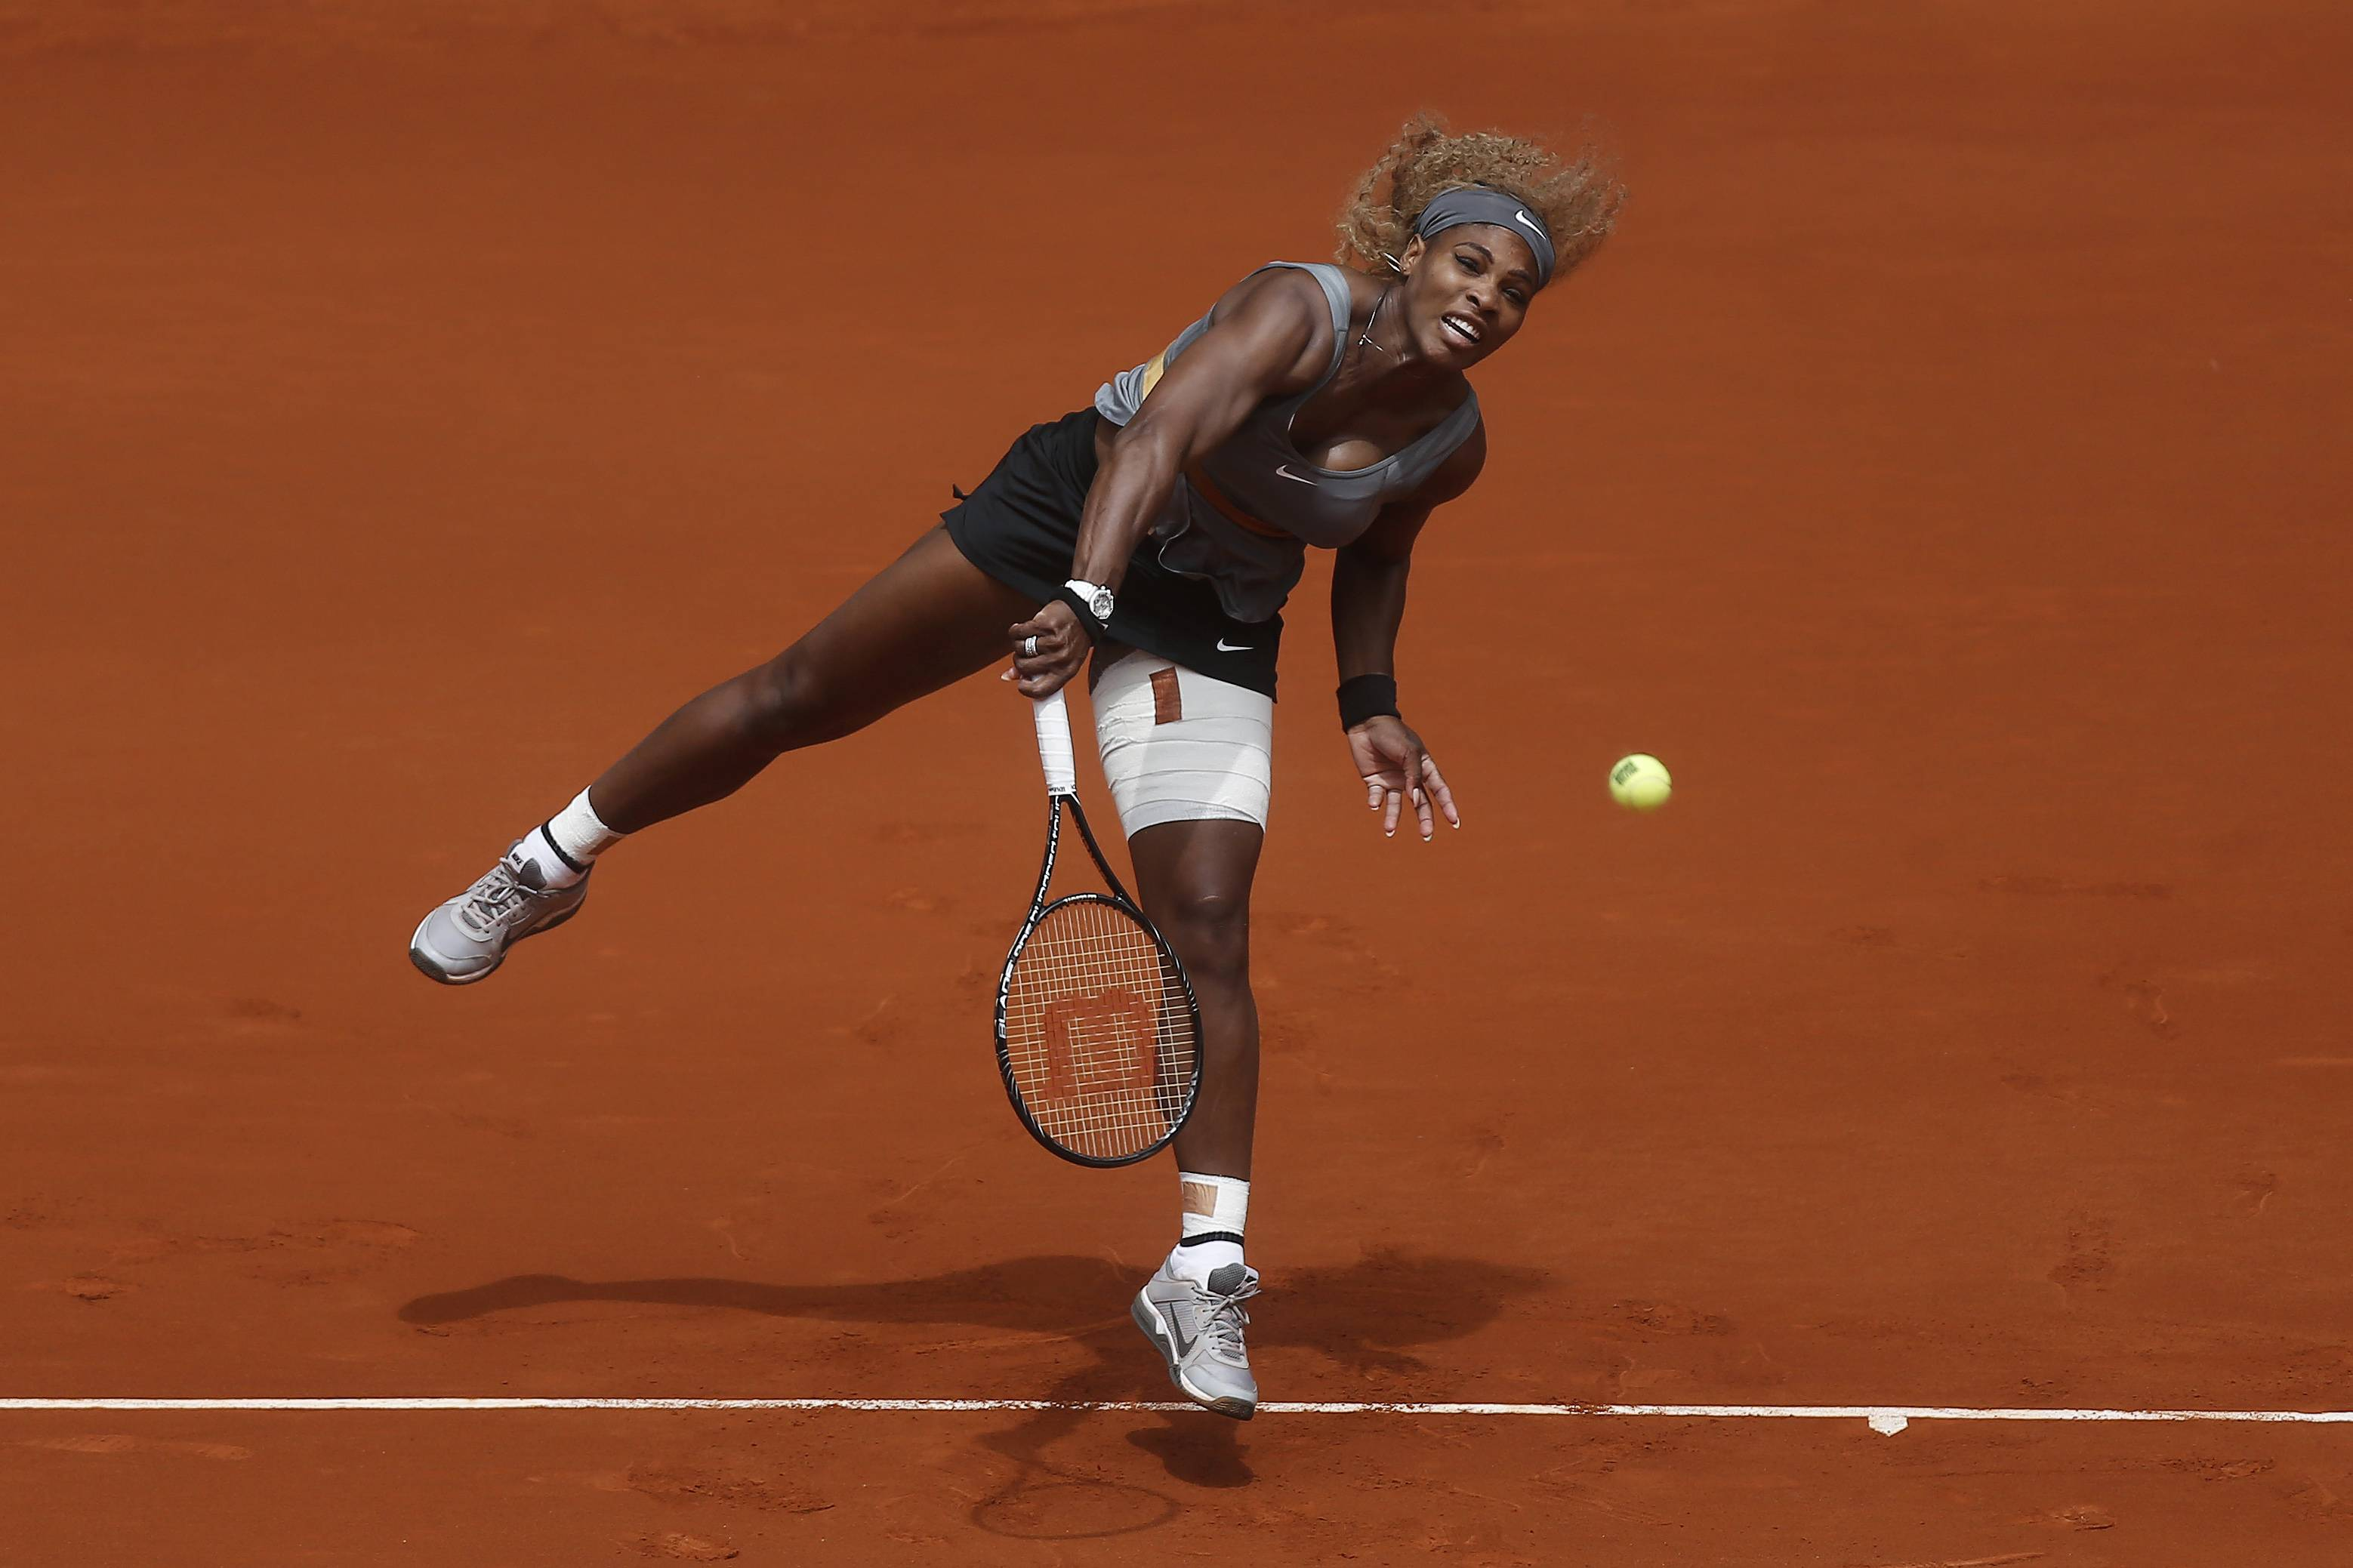 Serena Williams from the U.S. serves during a Madrid Open tennis tournament match against Shuai Peng from China, in Madrid, Spain, Wednesday, May 7, 2014.